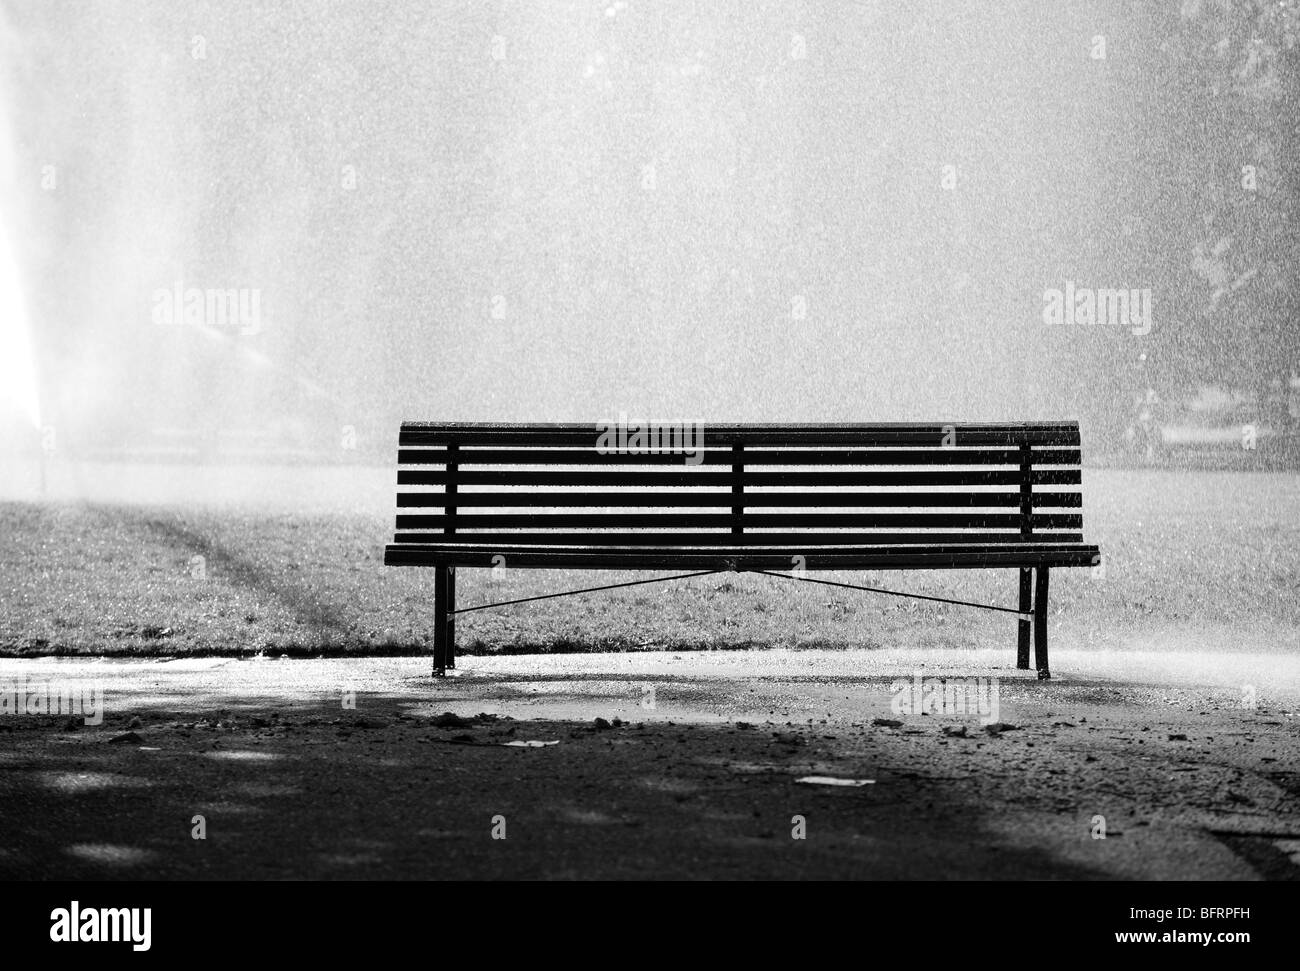 Bench in a park. Black and white concept. - Stock Image